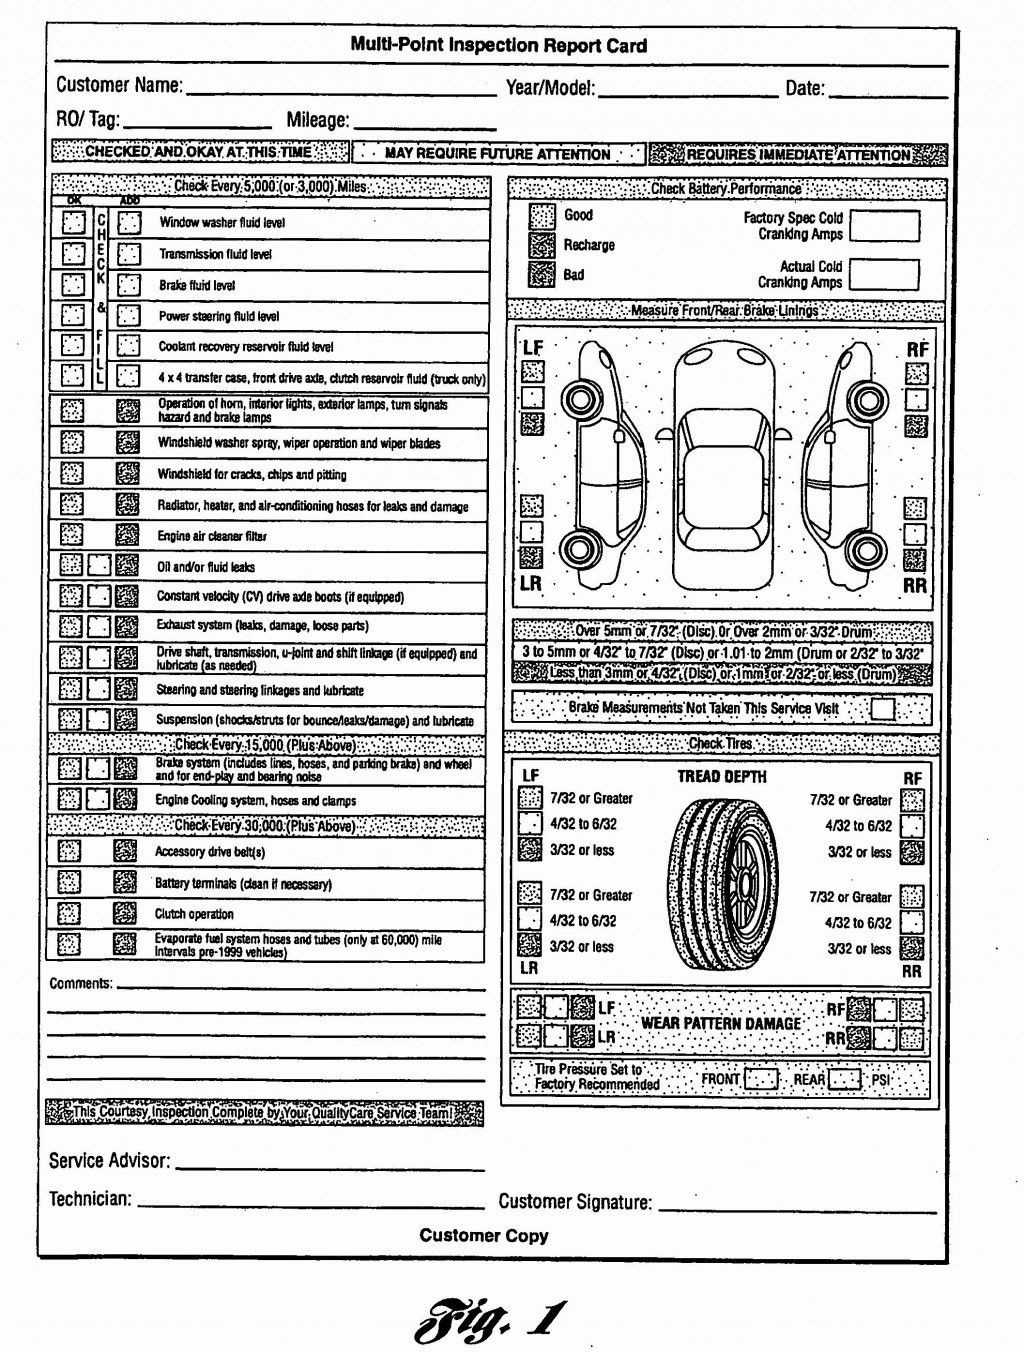 001 Fascinating Vehicle Inspection Checklist Template High Resolution  Safety Ontario Motor Kenya FormLarge